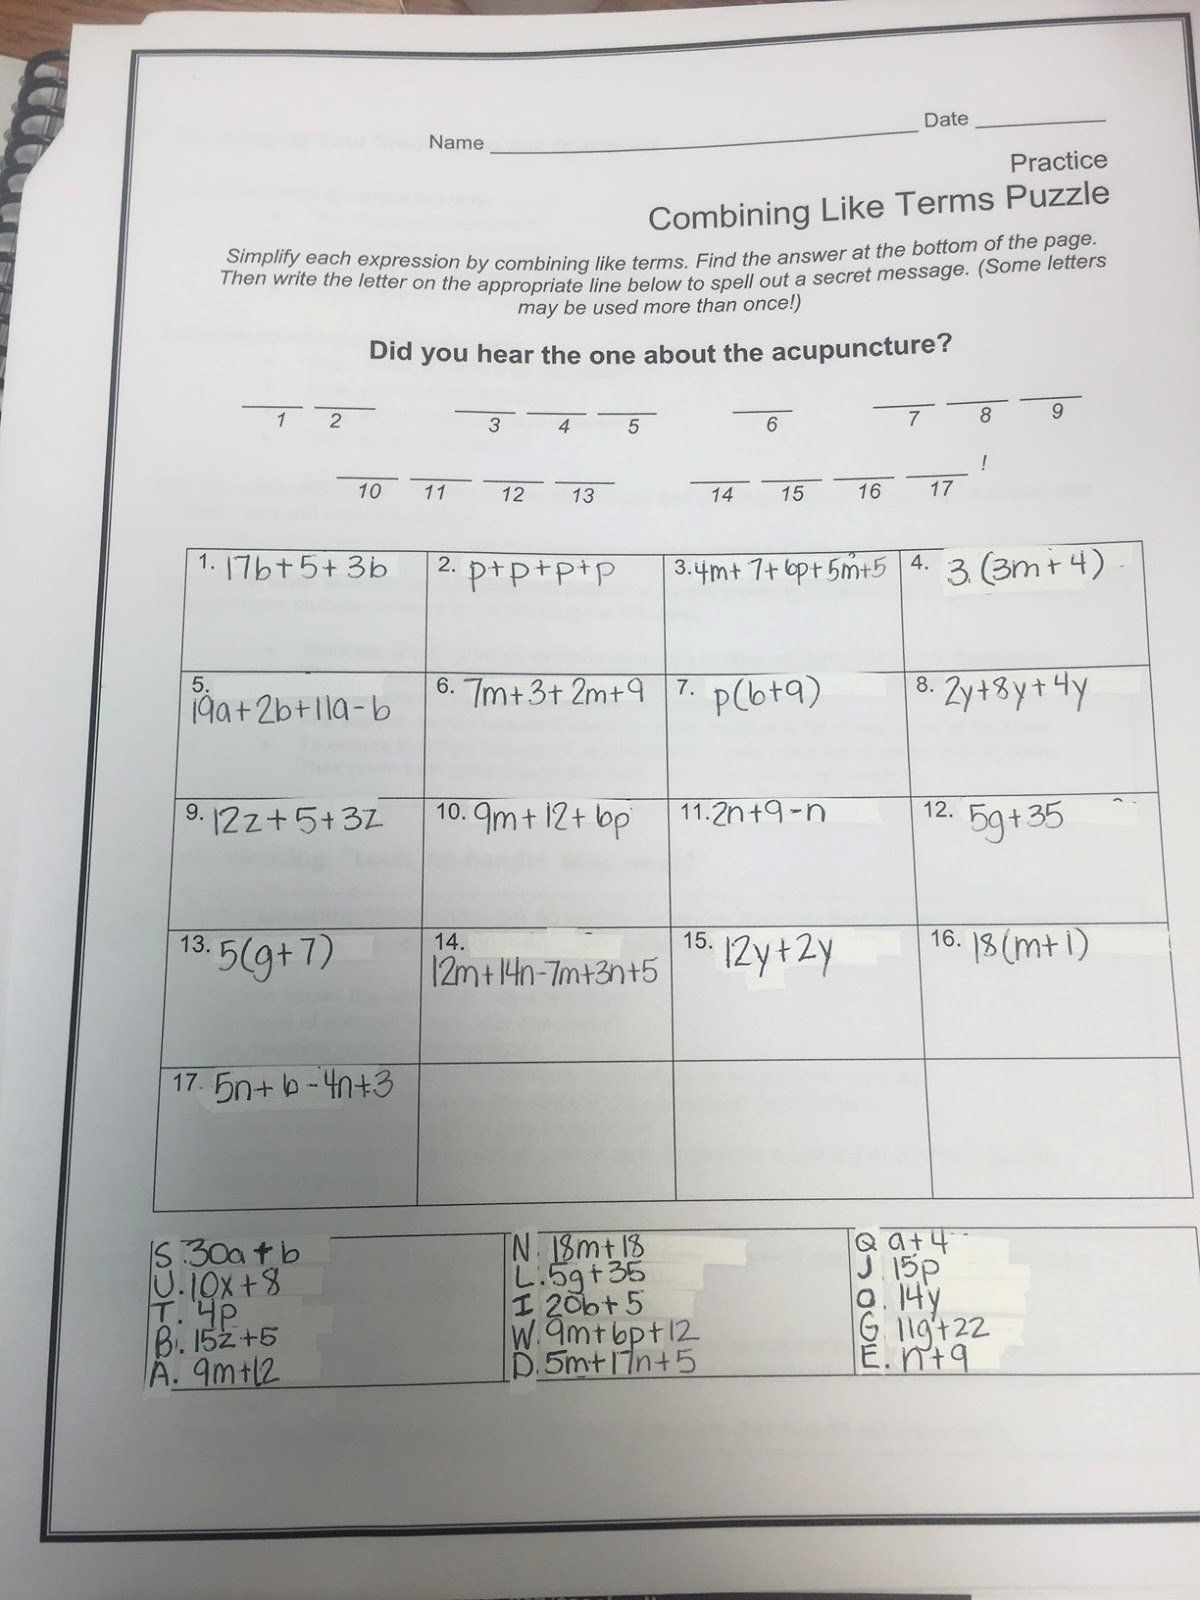 Combining Like Terms Practice Worksheet Elegant Mrs White